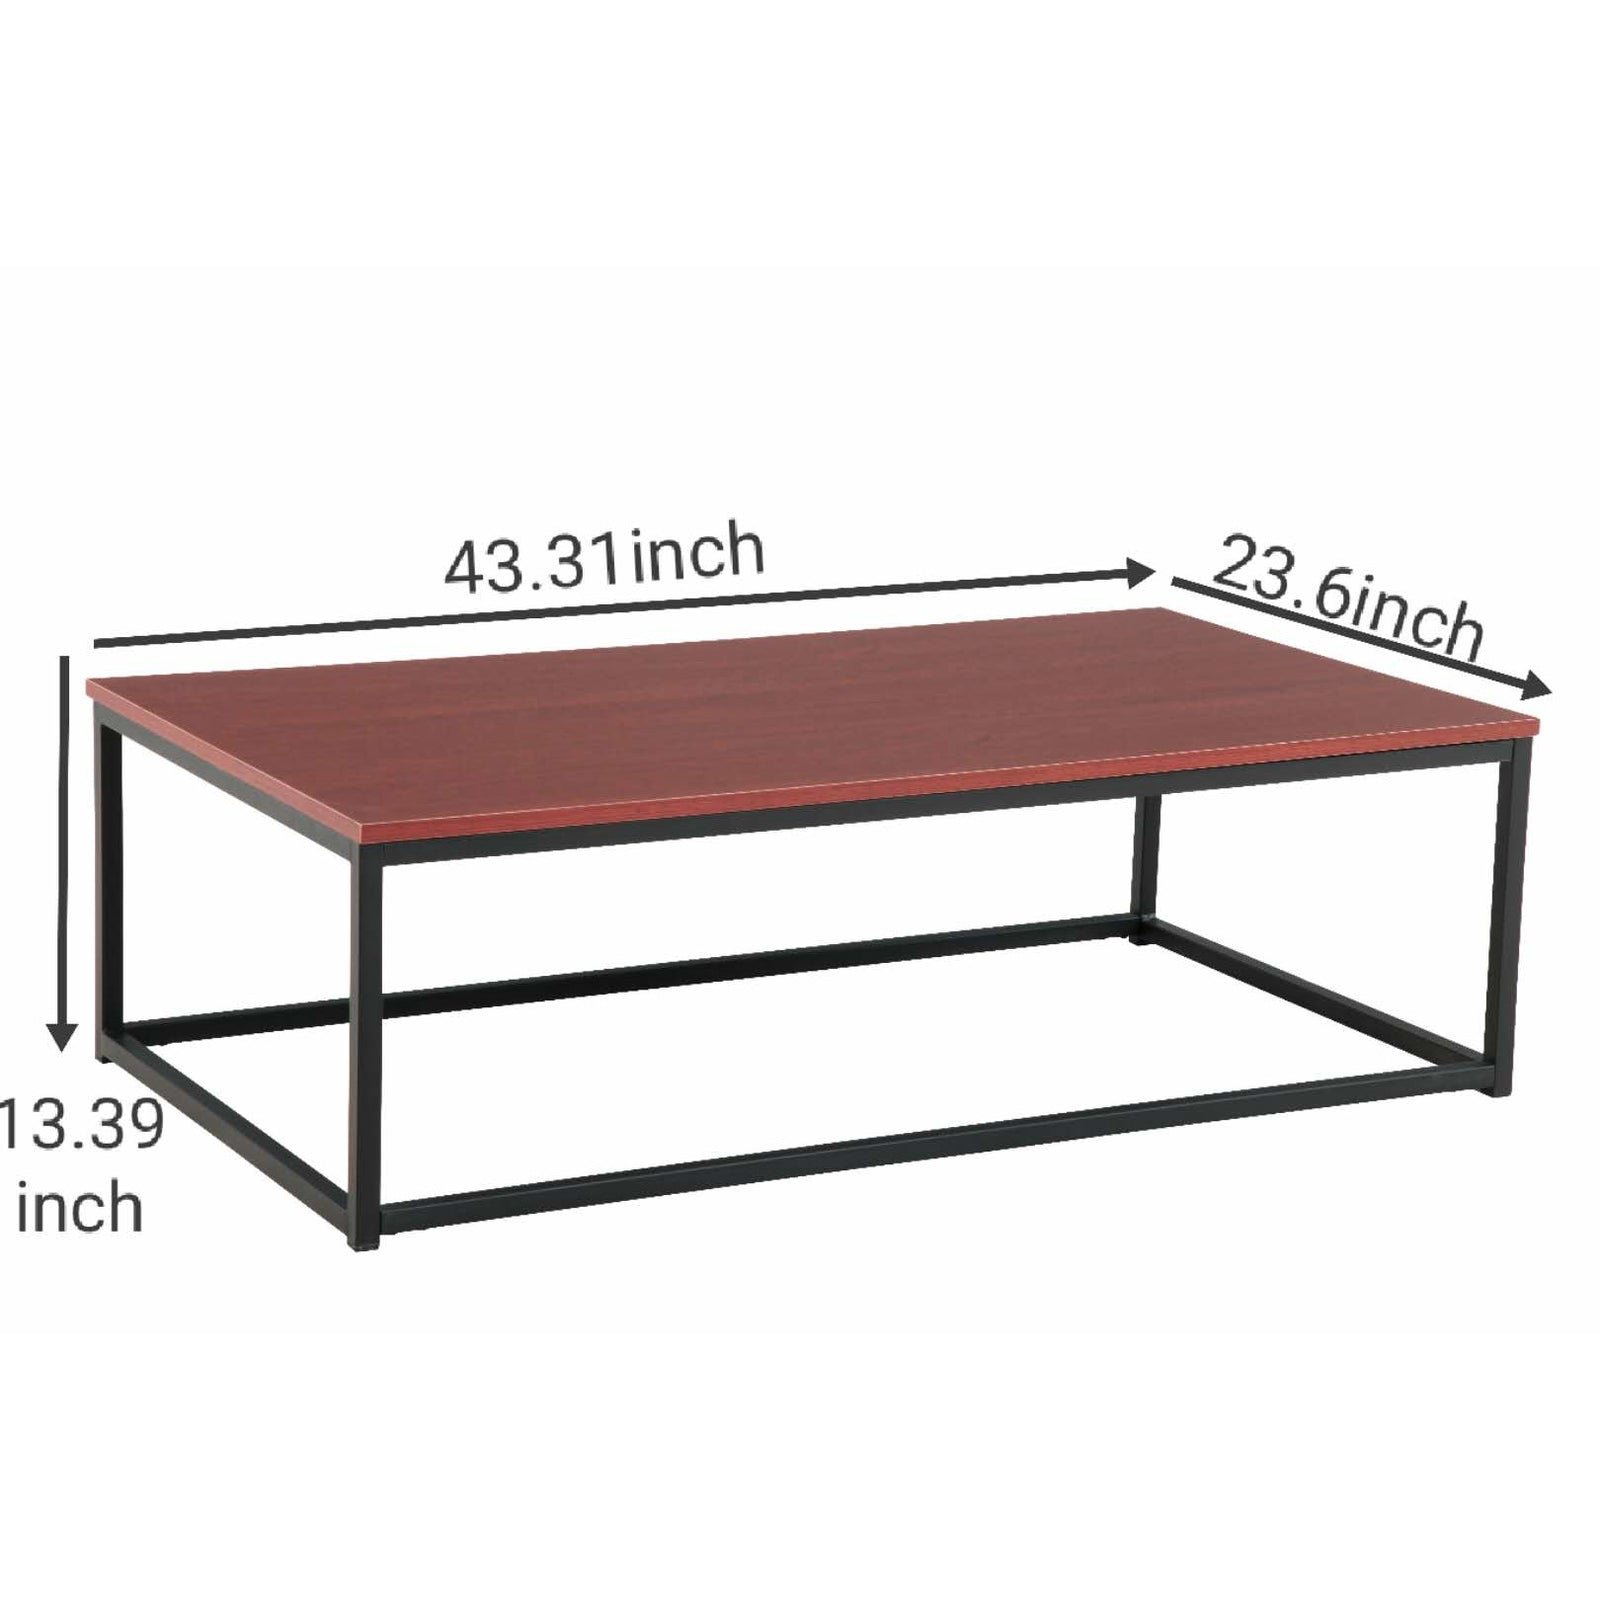 Coffee Table Dining Table - Red Brown - Size